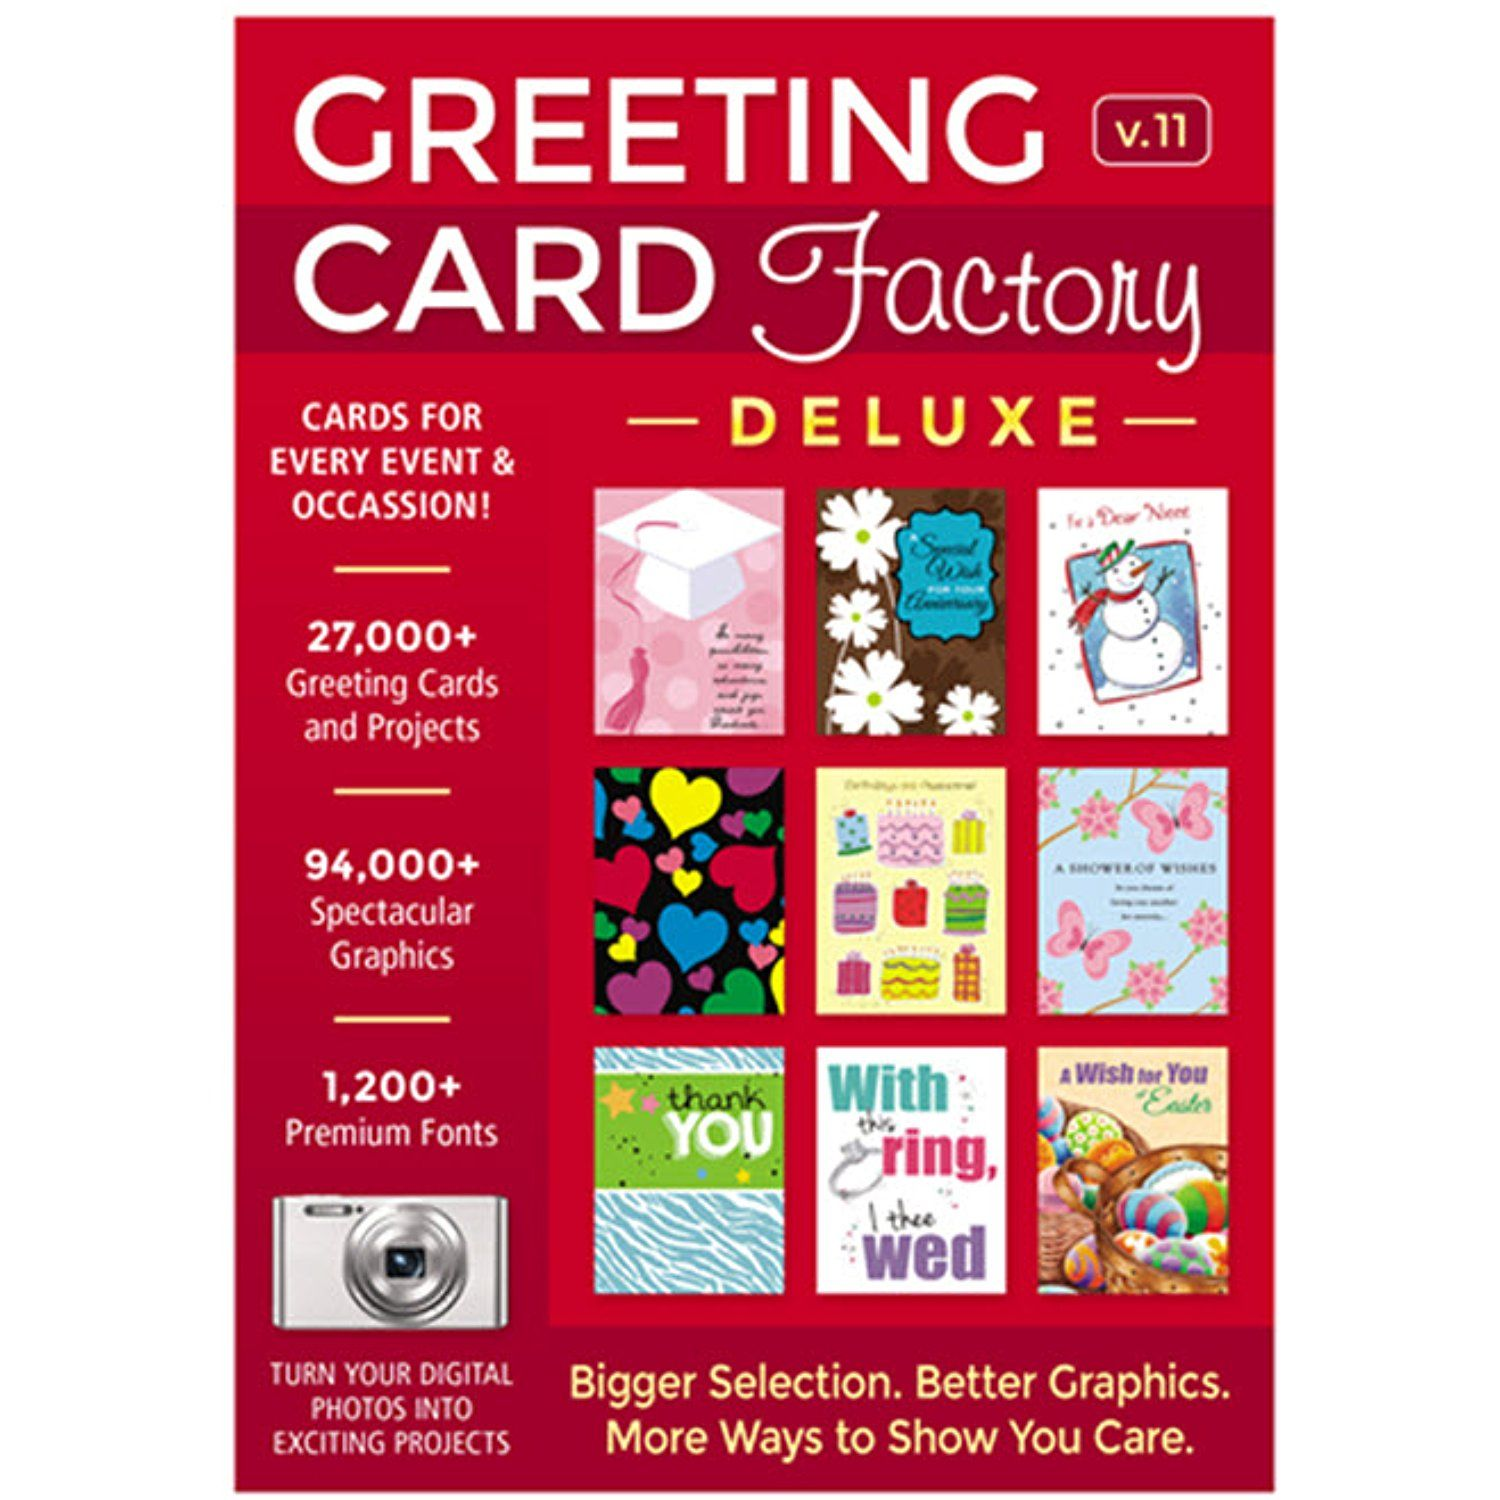 Greetings Card Factory Deluxe Free Download Choice Image Greetings